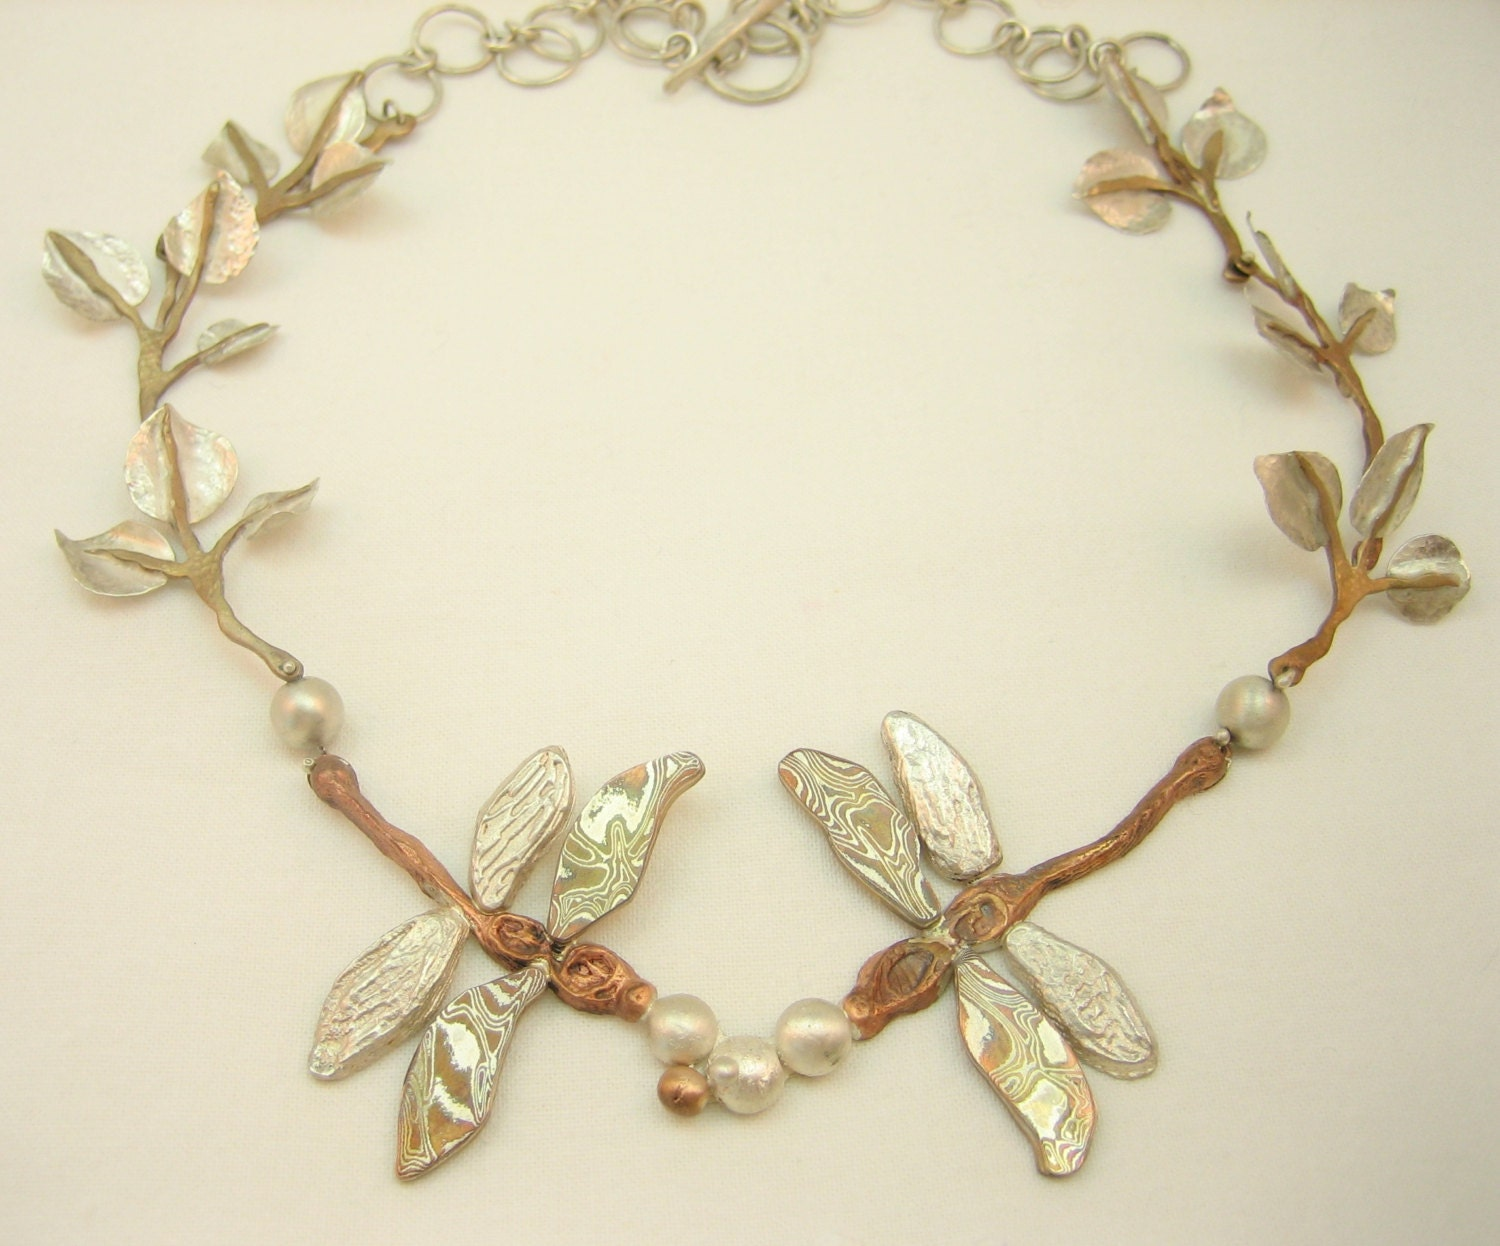 Handmade one of a kind metal and Mokume Gane dragonfly and hammered silver metal leaf necklace artisan made dragonfly statement necklace